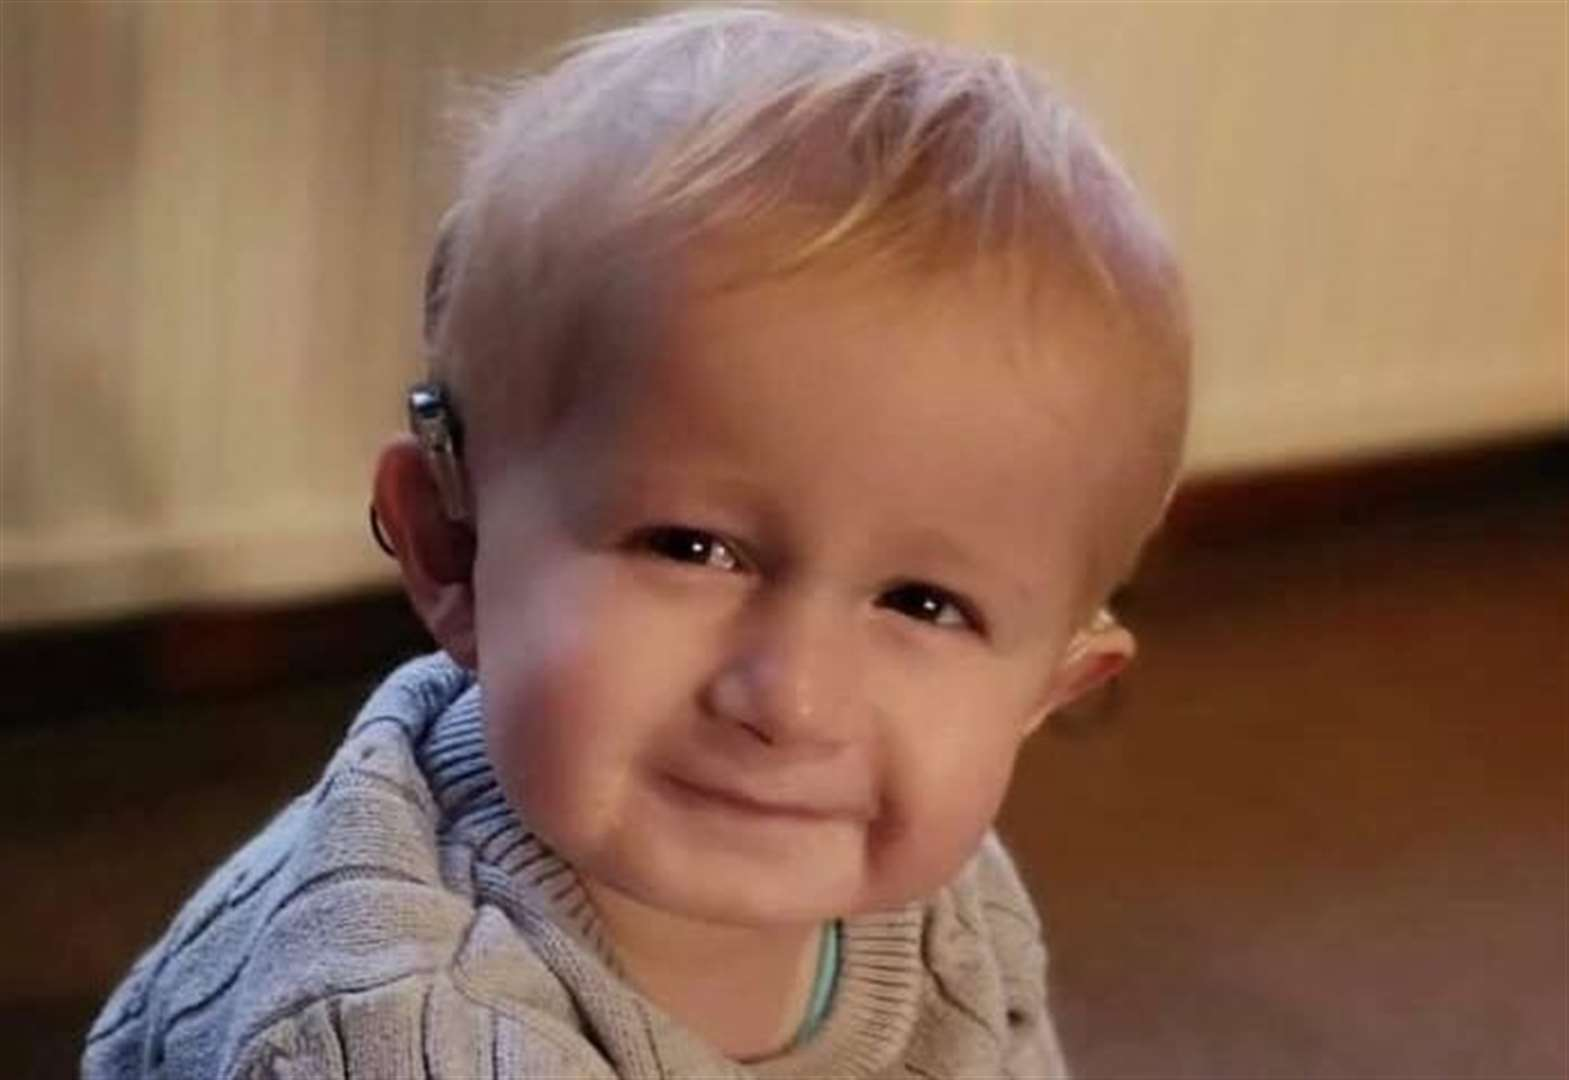 'He is our hero' says parents of toddler with rare condition